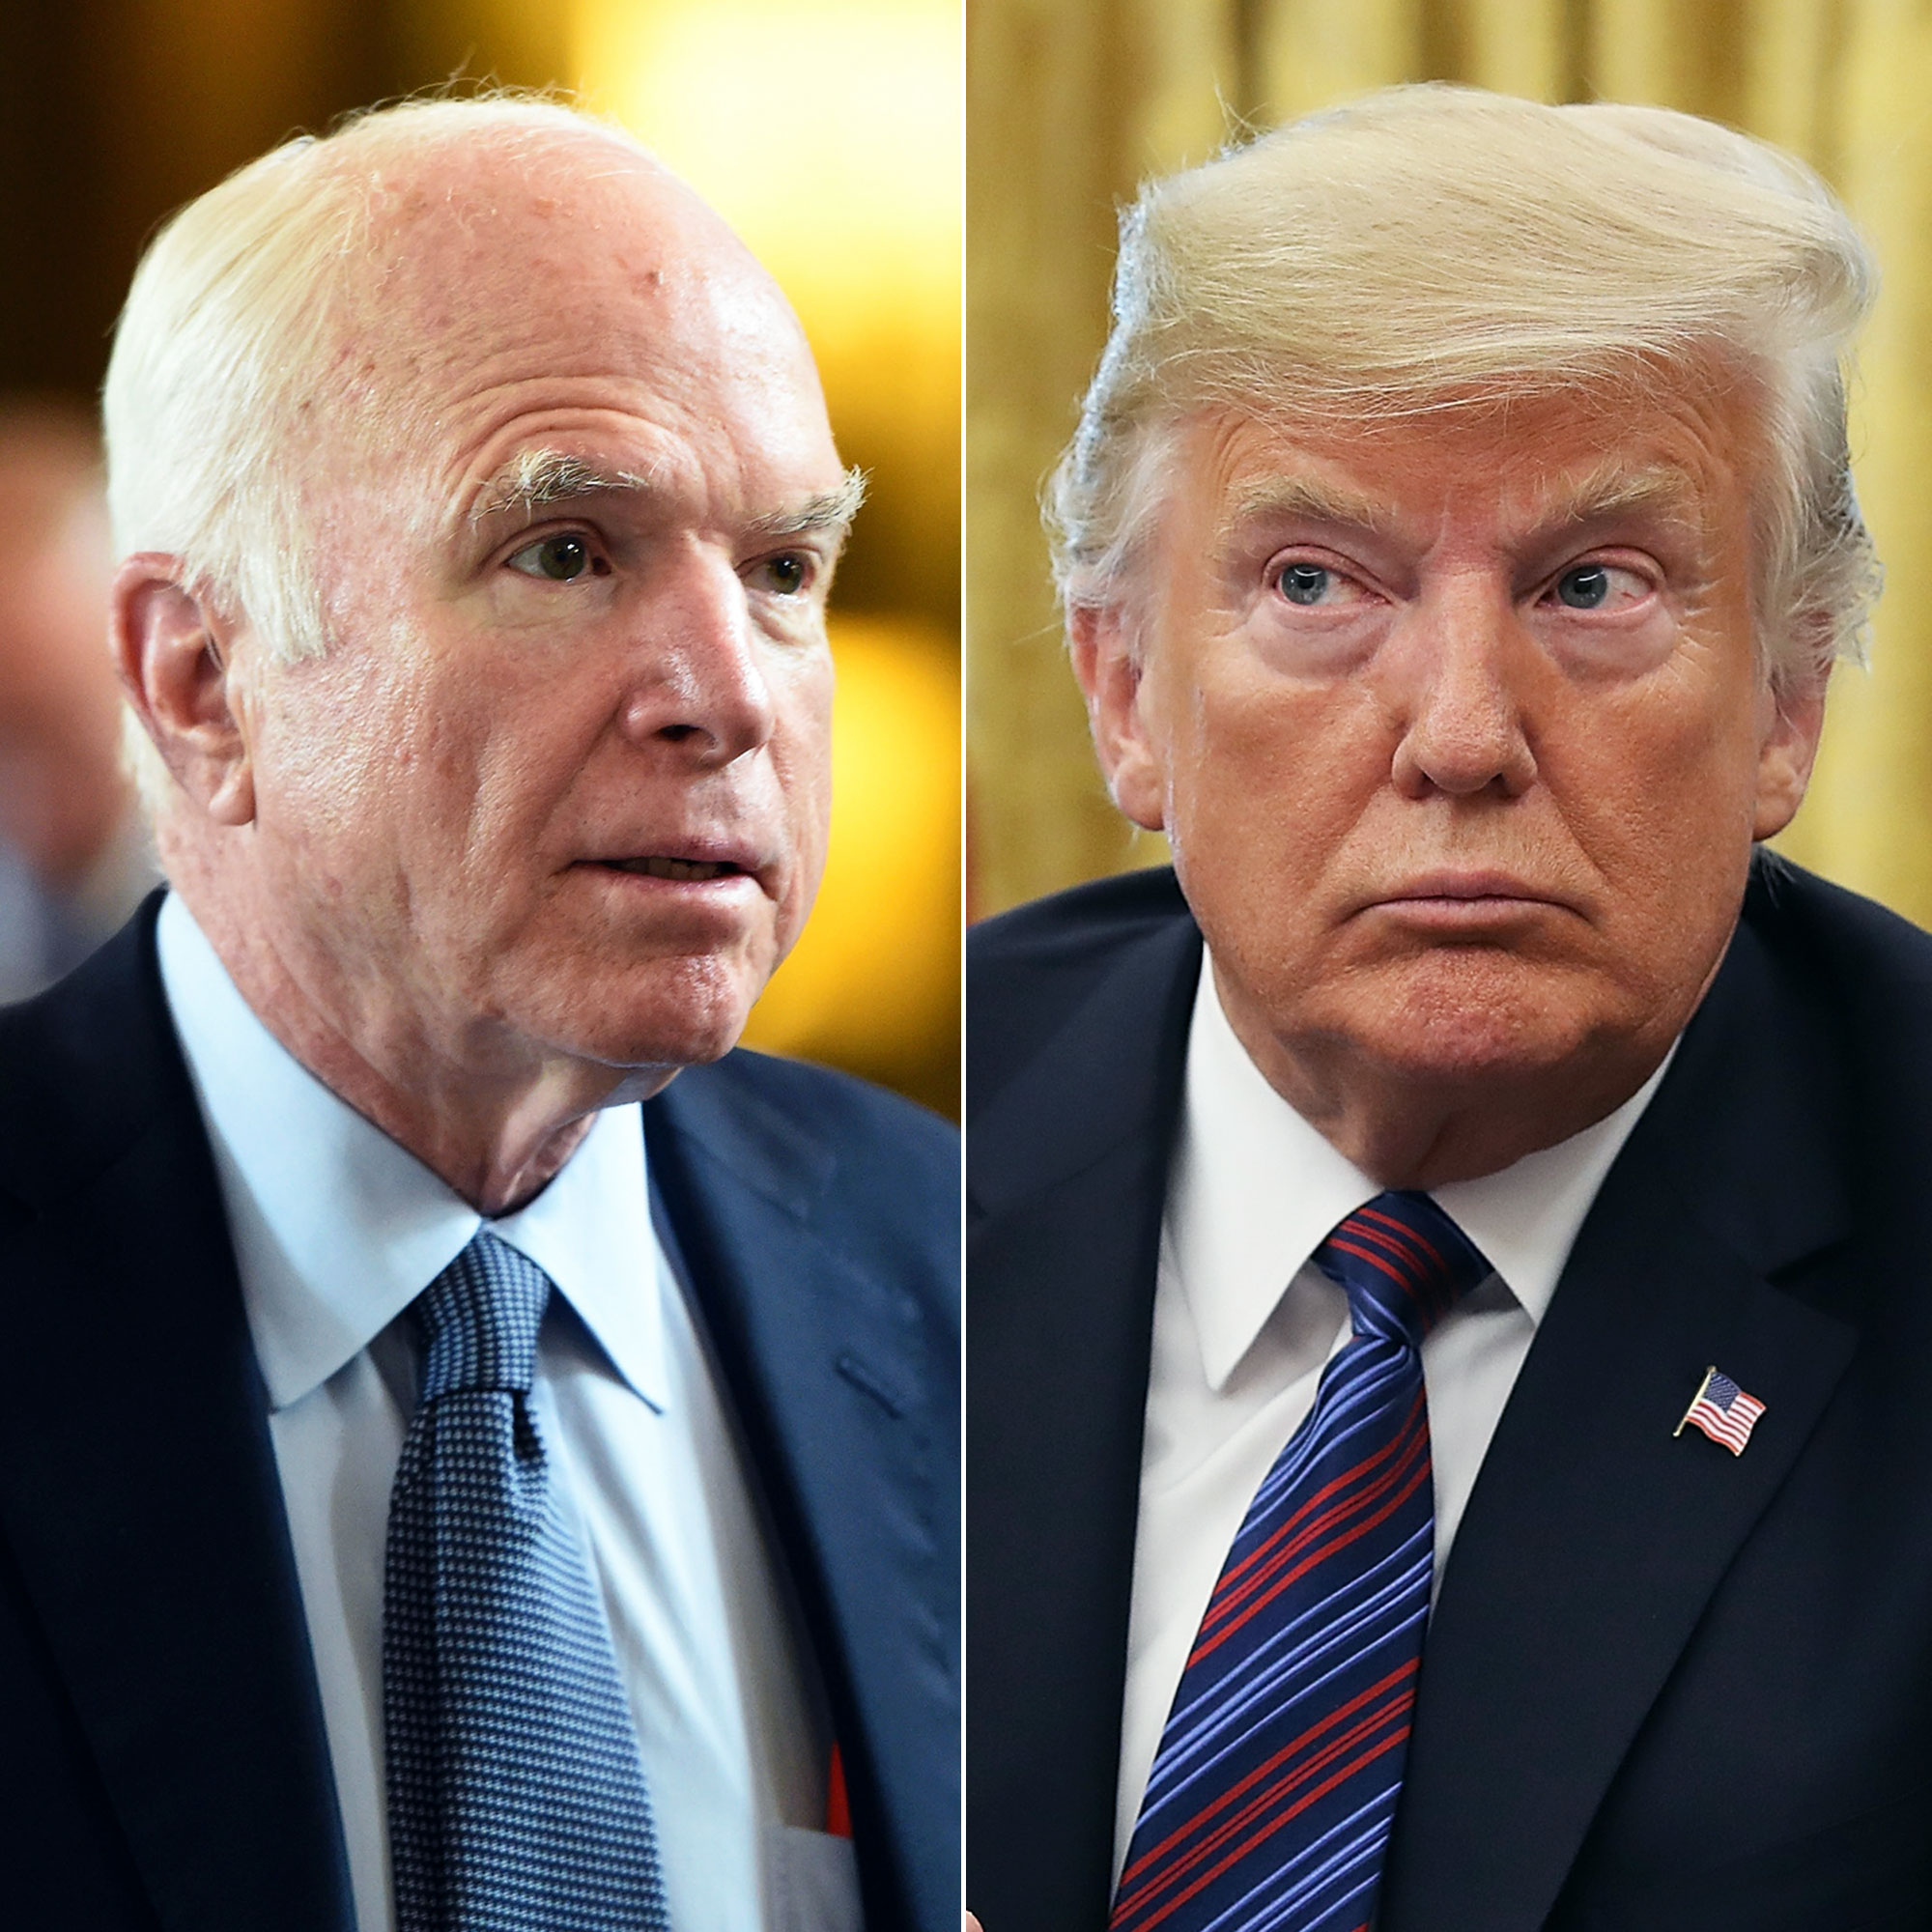 John McCain Takes Aim at Donald Trump in Final Message as White House Flag Flies at Full-Staff